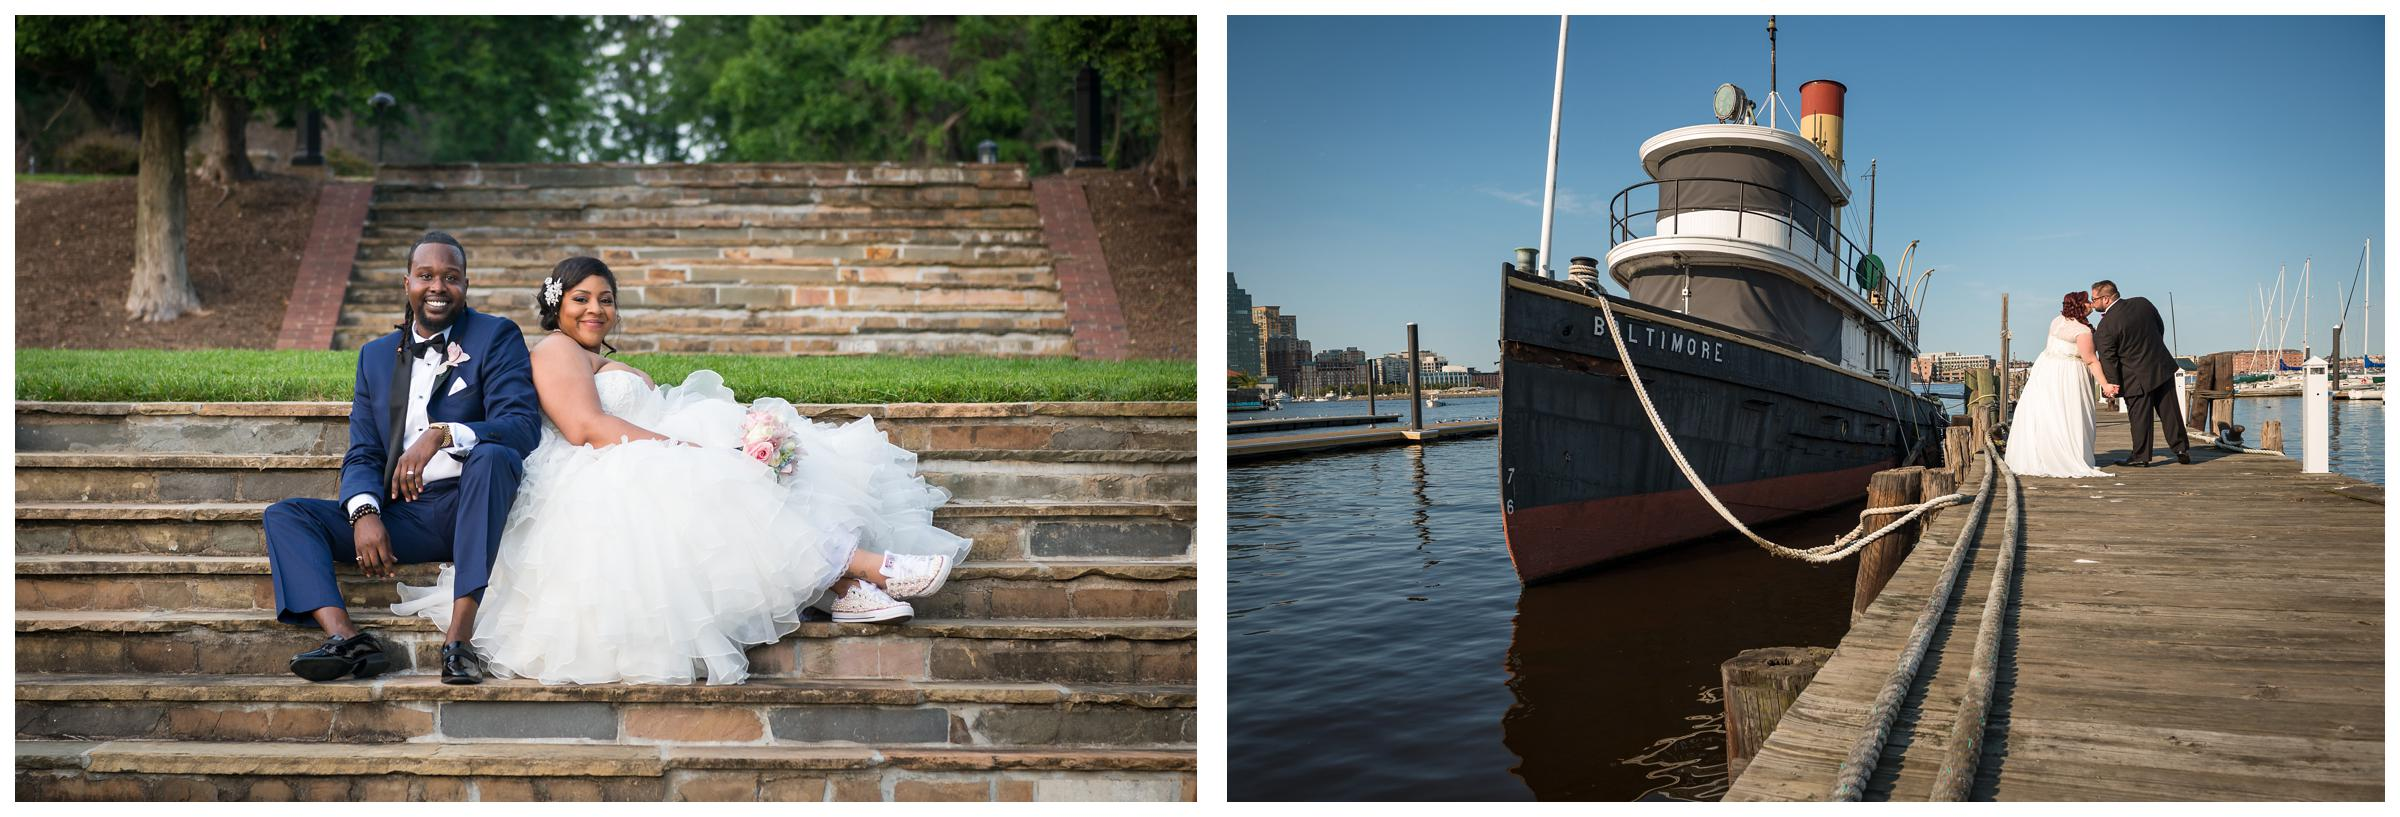 bride and groom portraits at Oxon Hill Manor steps and Baltimore Harbor in Maryland